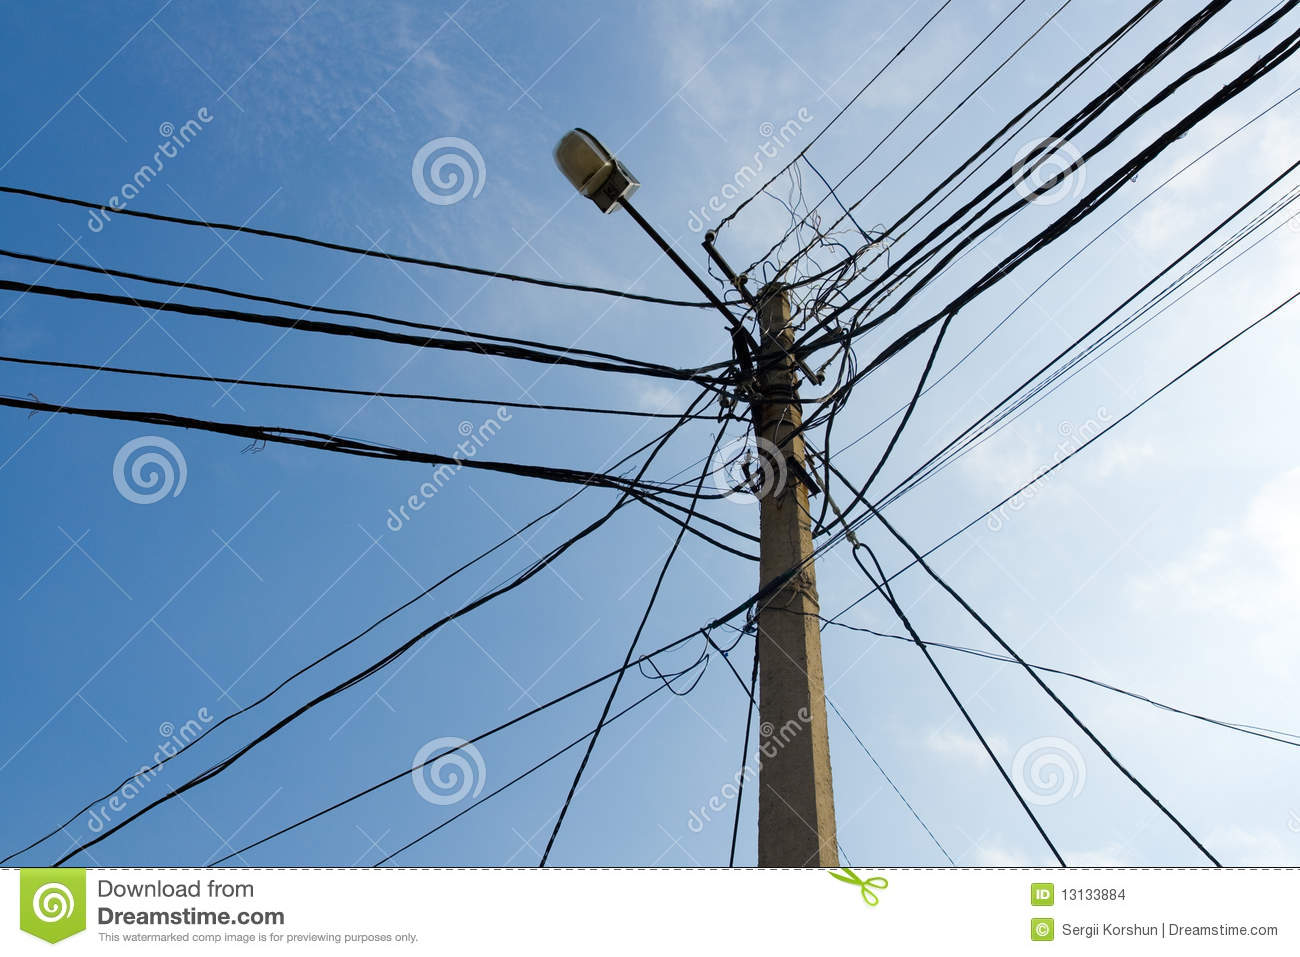 hight resolution of lamp pole and cross of tangled electric wires